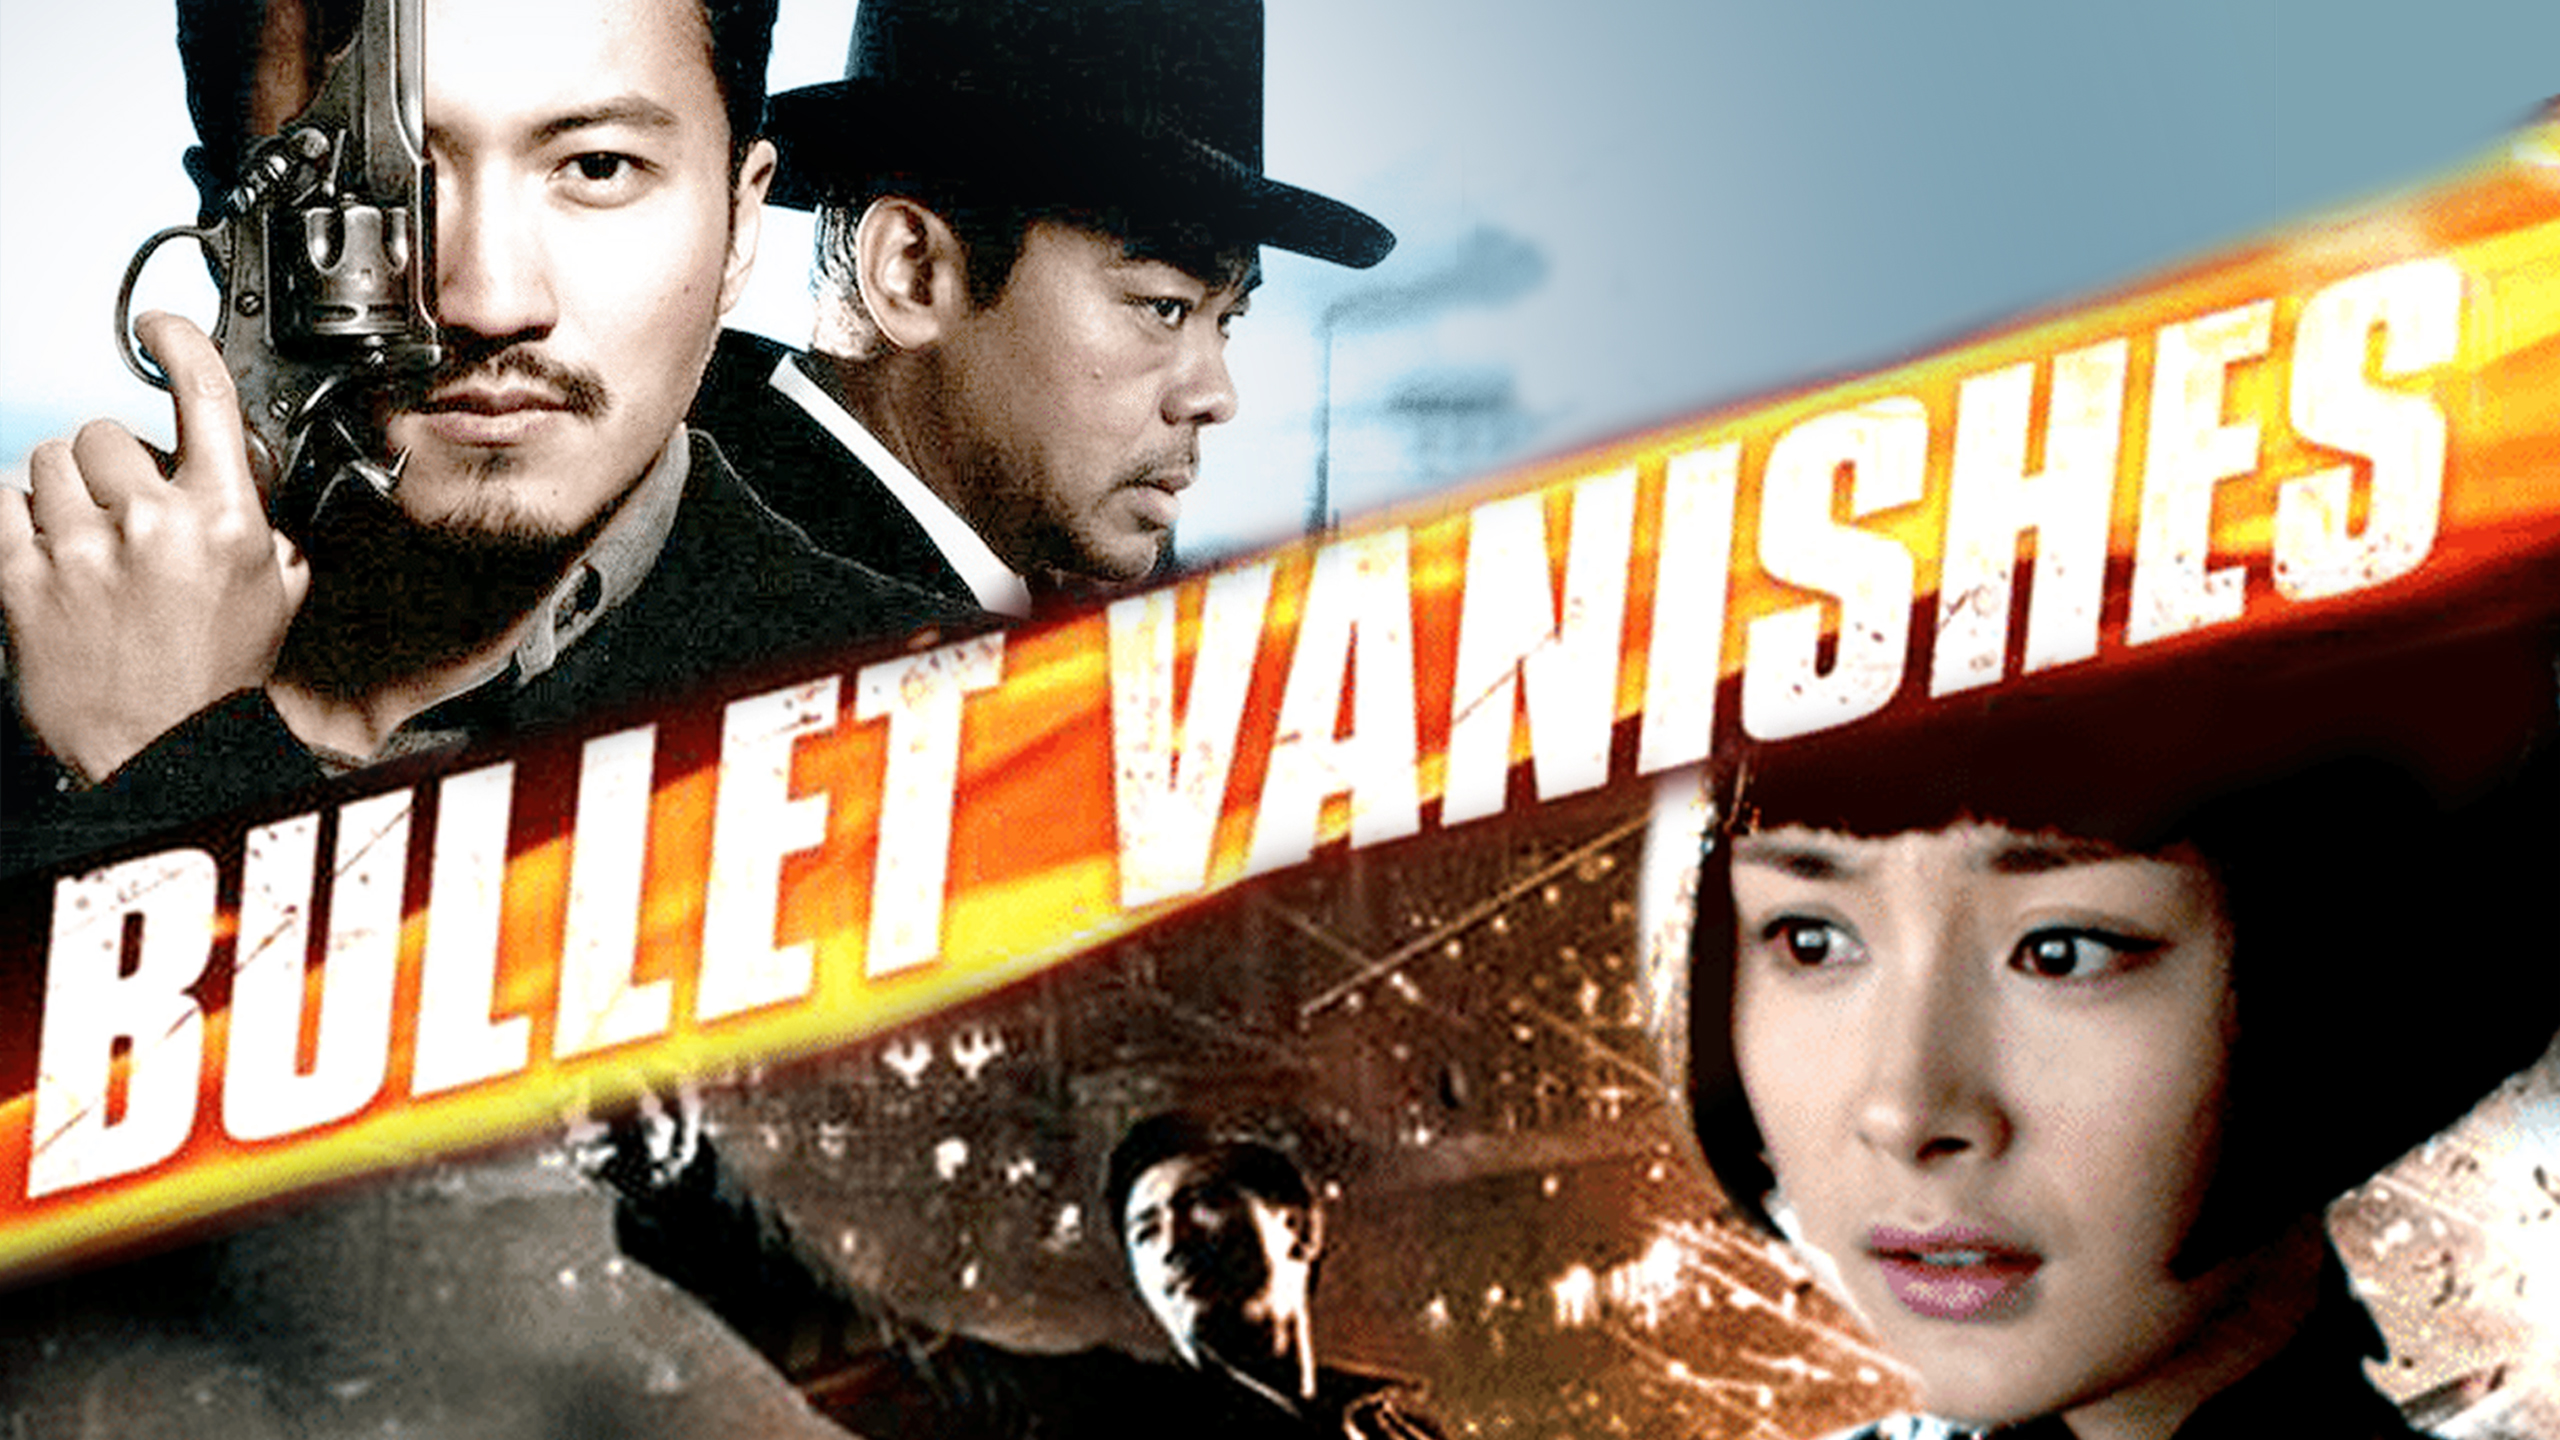 A newly promoted detective and a novice police officer work together on investigating the deaths in a bullet factory. Directed by Lo Chi-leung.